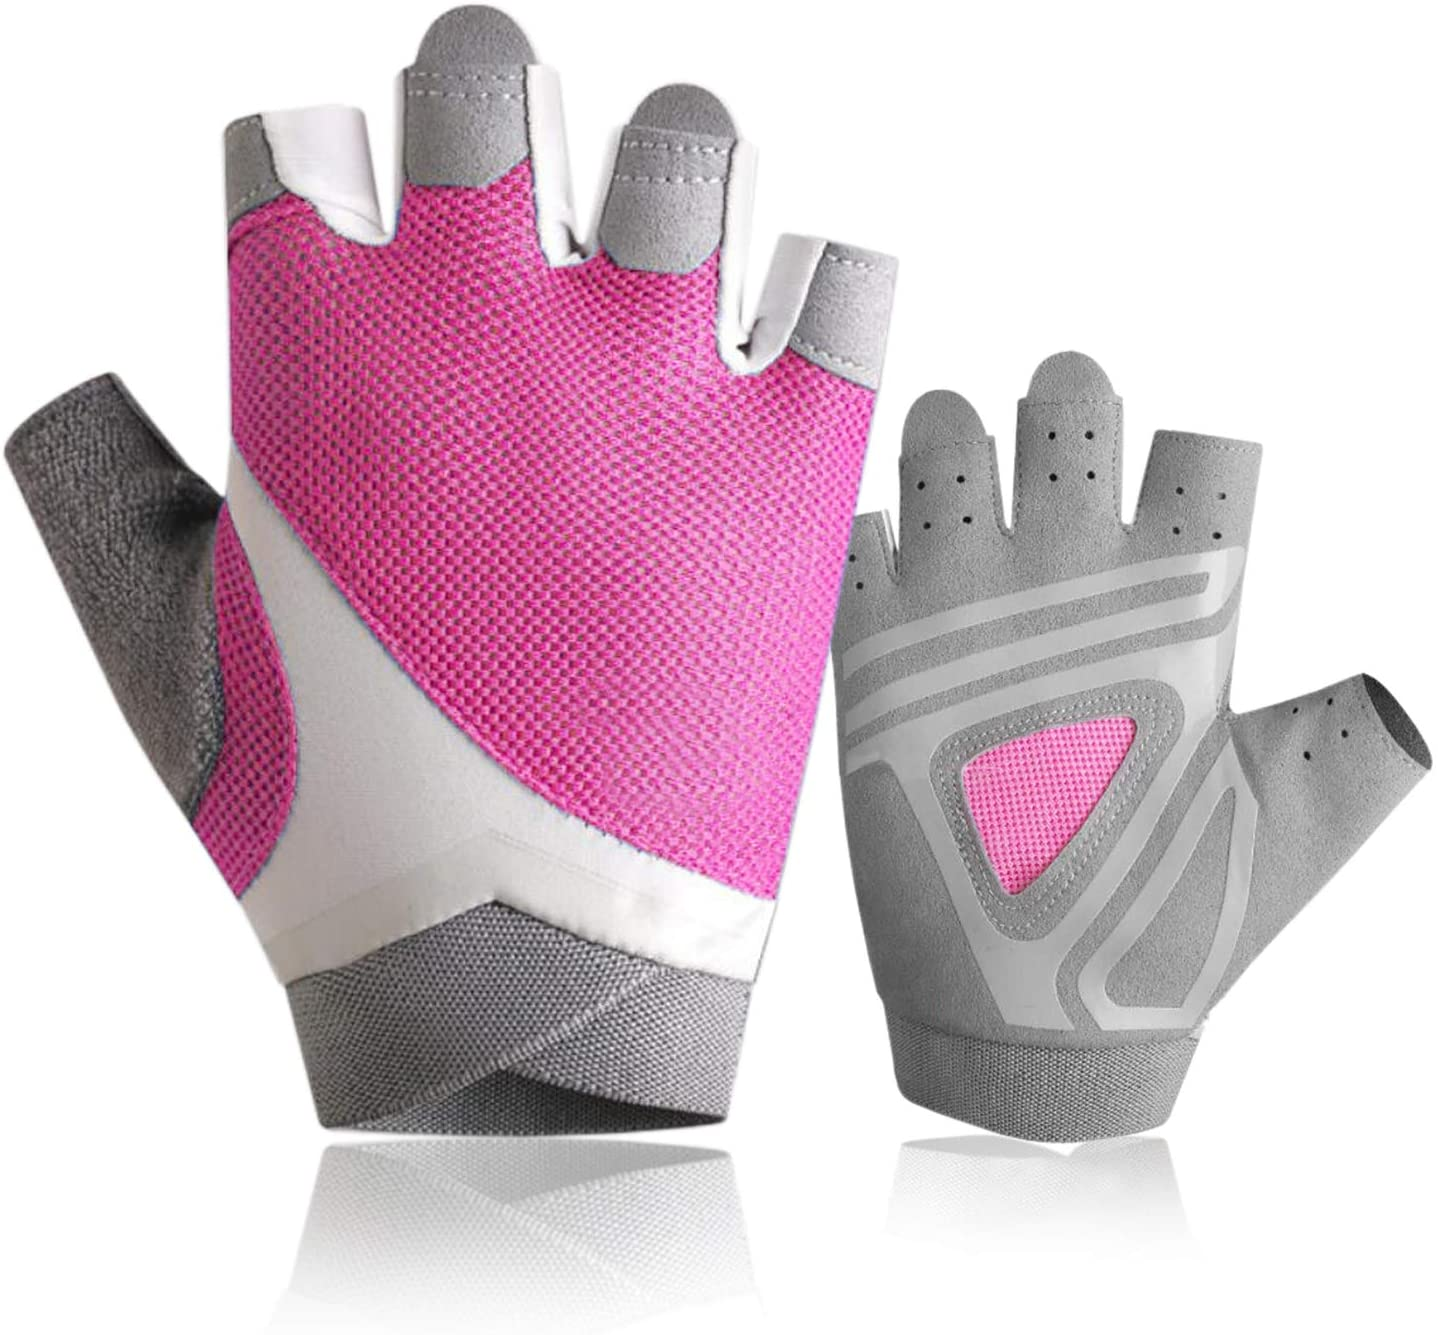 rowing gloves